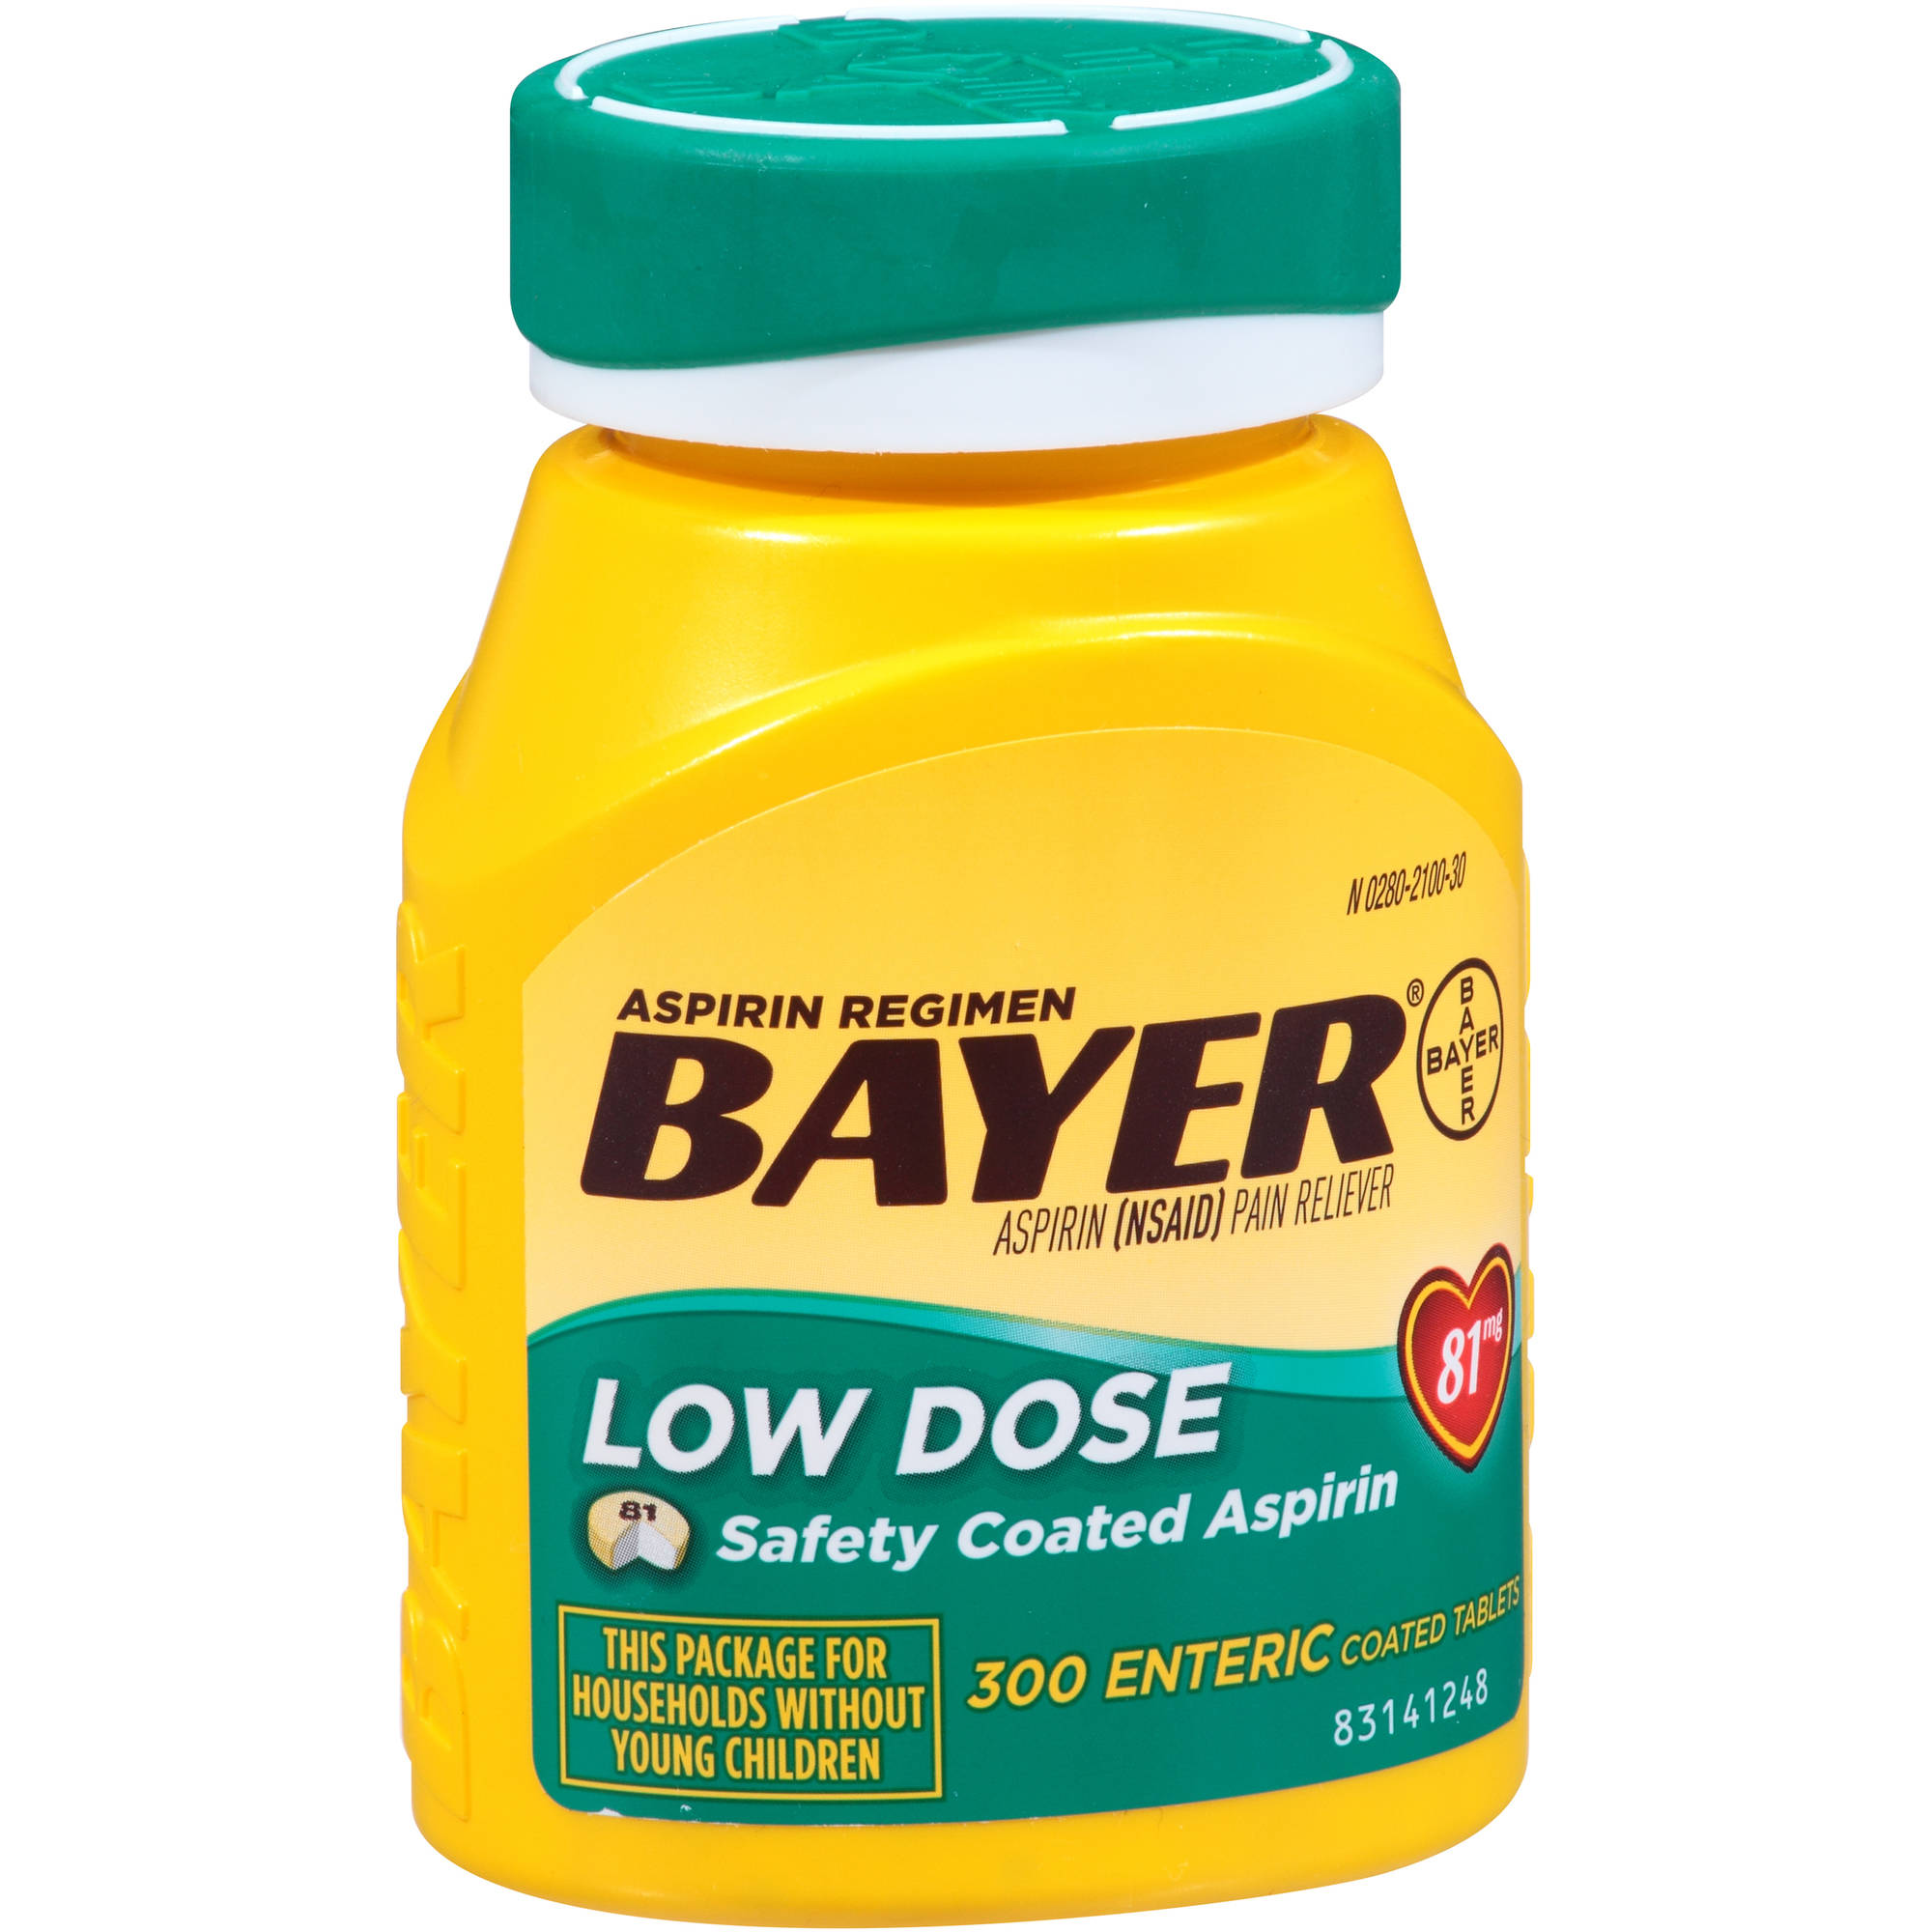 Bayer Low Dose Aspirin Enteric Coated Tablets, 81mg, 300 count